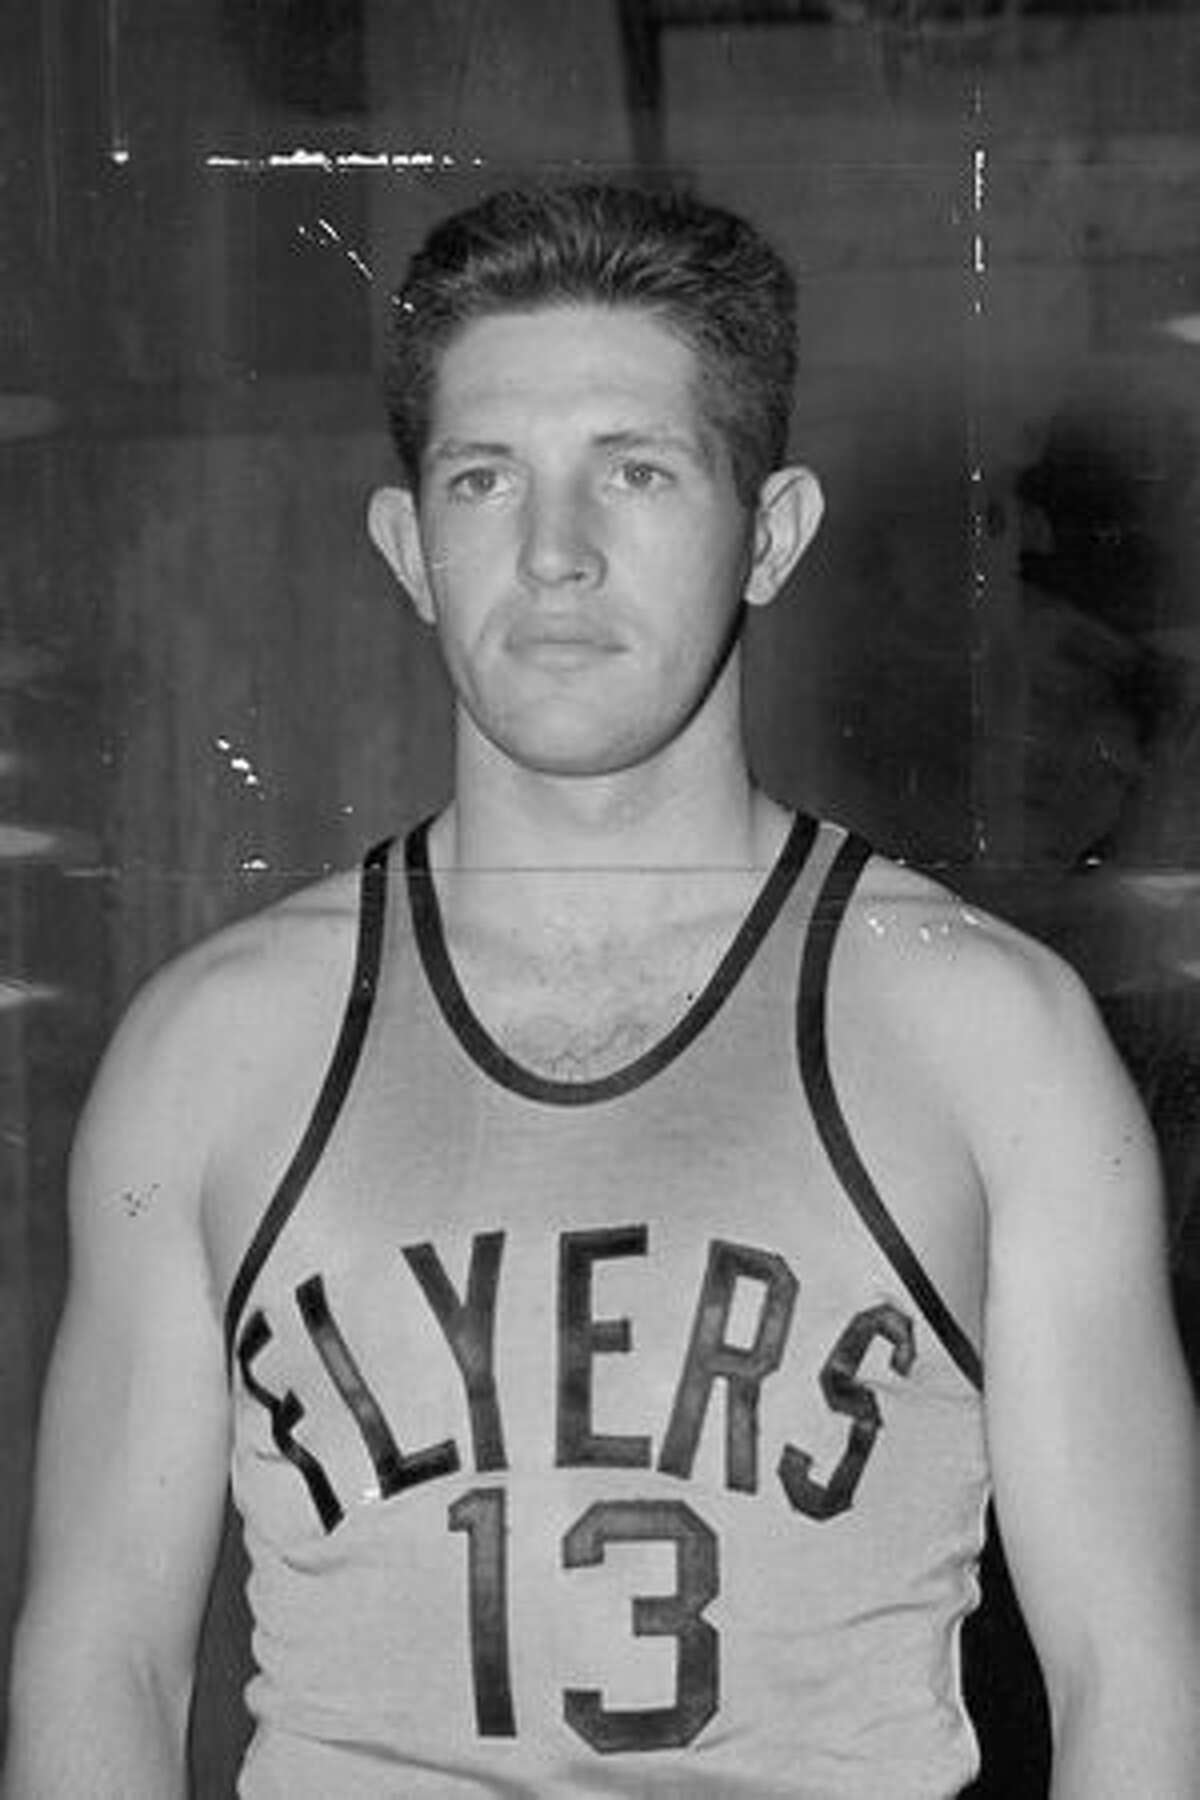 Marv Harshman as a basketball player for the Navy team, December 9, 1942.